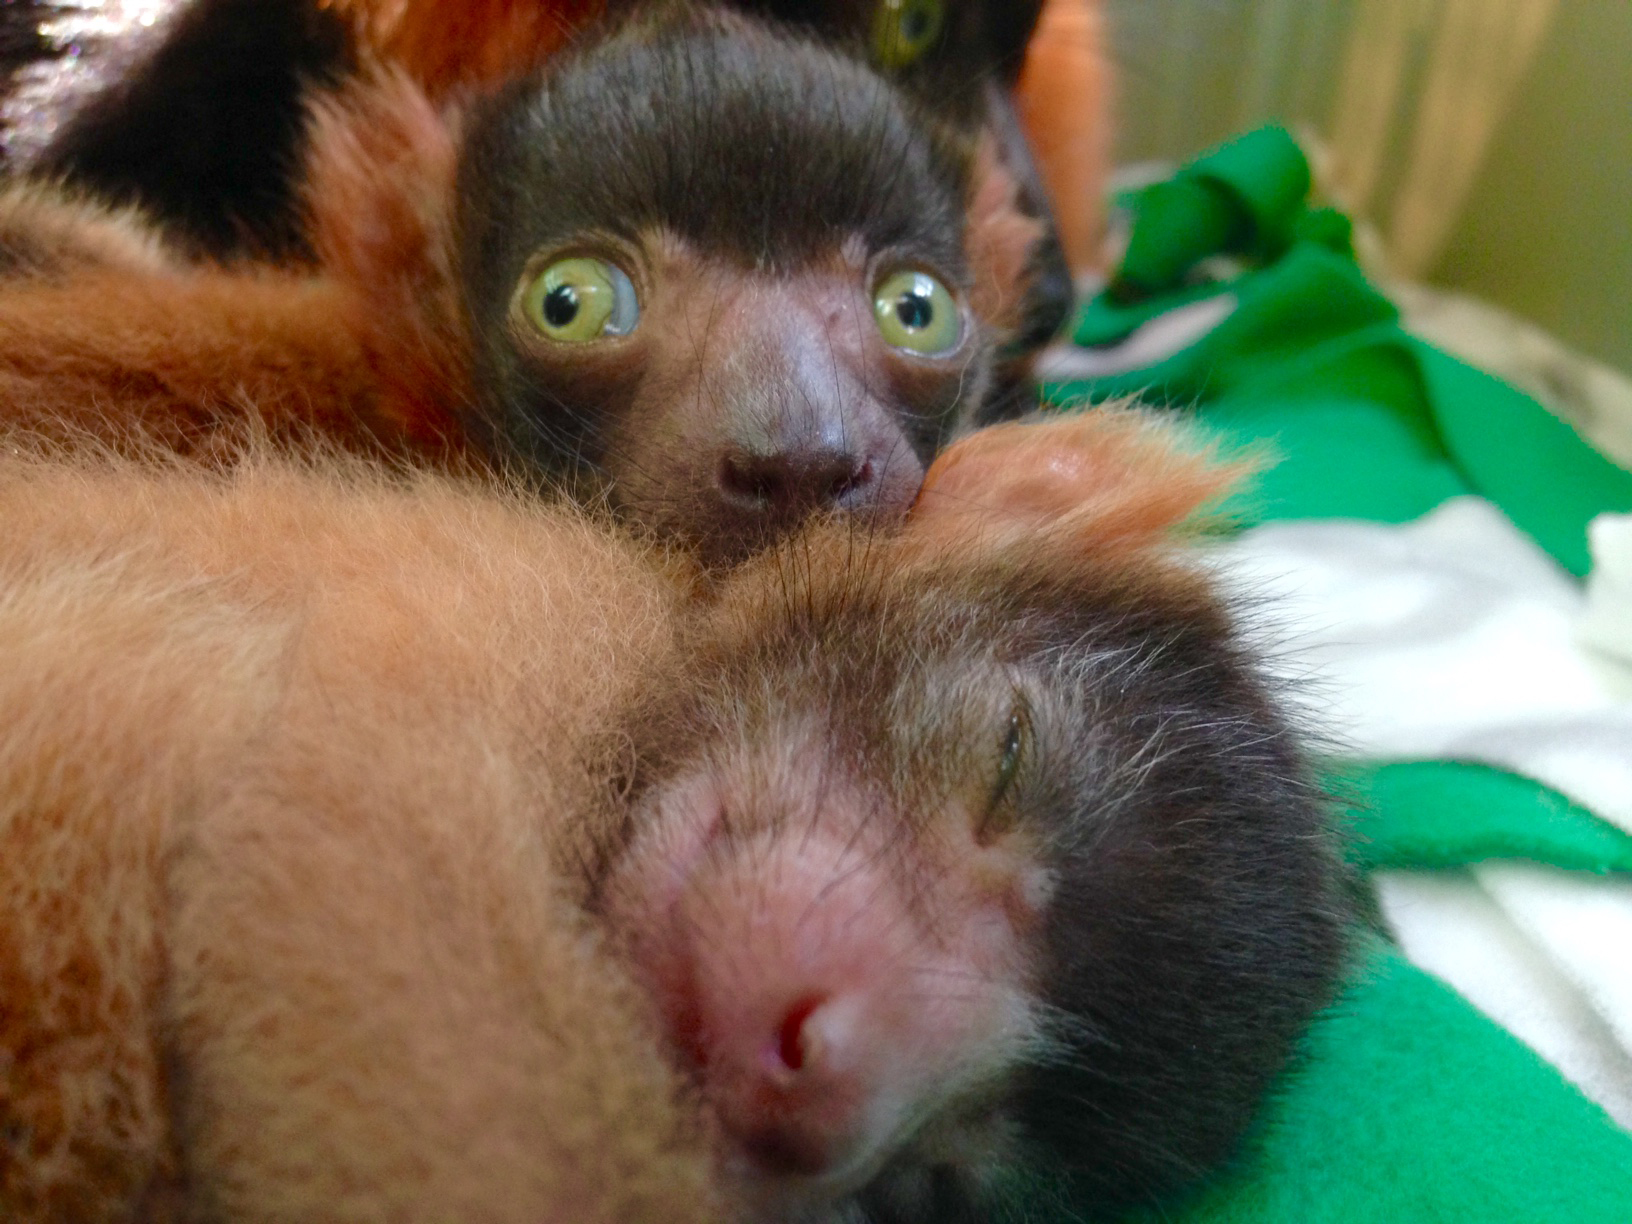 National Zoo celebrates birth of critically endangered lemurs